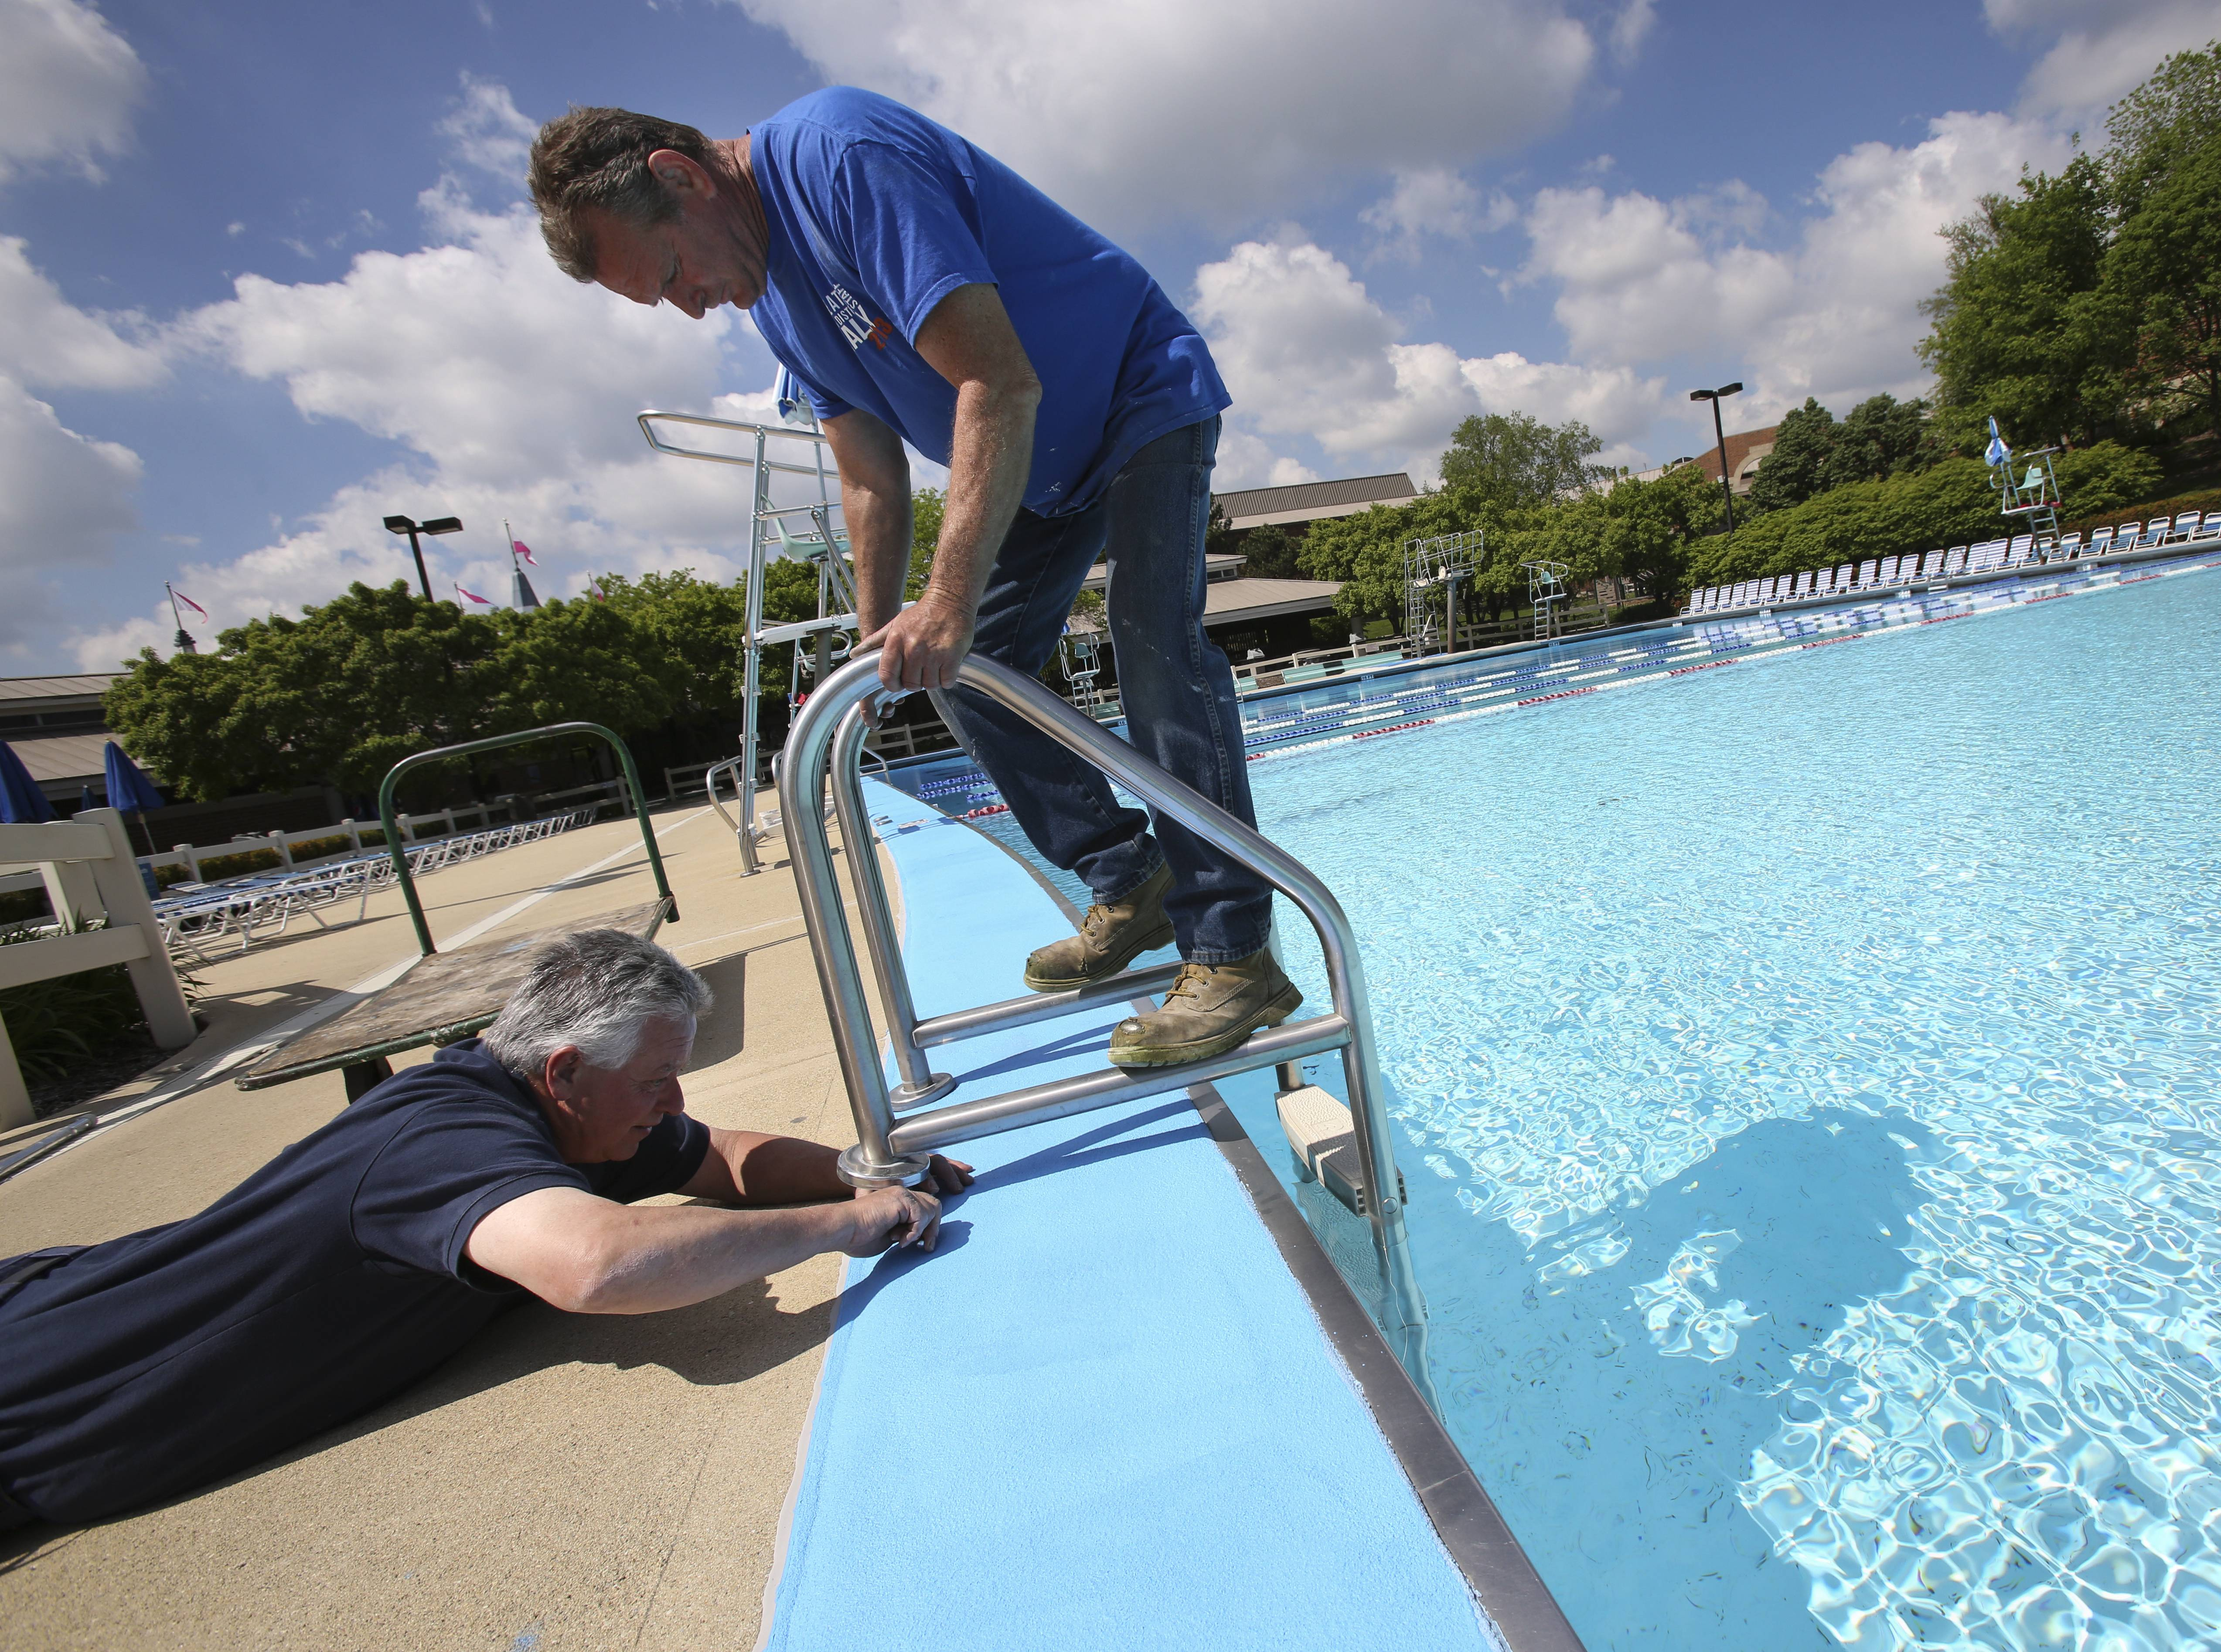 Wheaton Park District employees Don Shee and Dan Saxton install a ladder Friday at Rice Pool in preparation for Saturday's opening of swimming season.